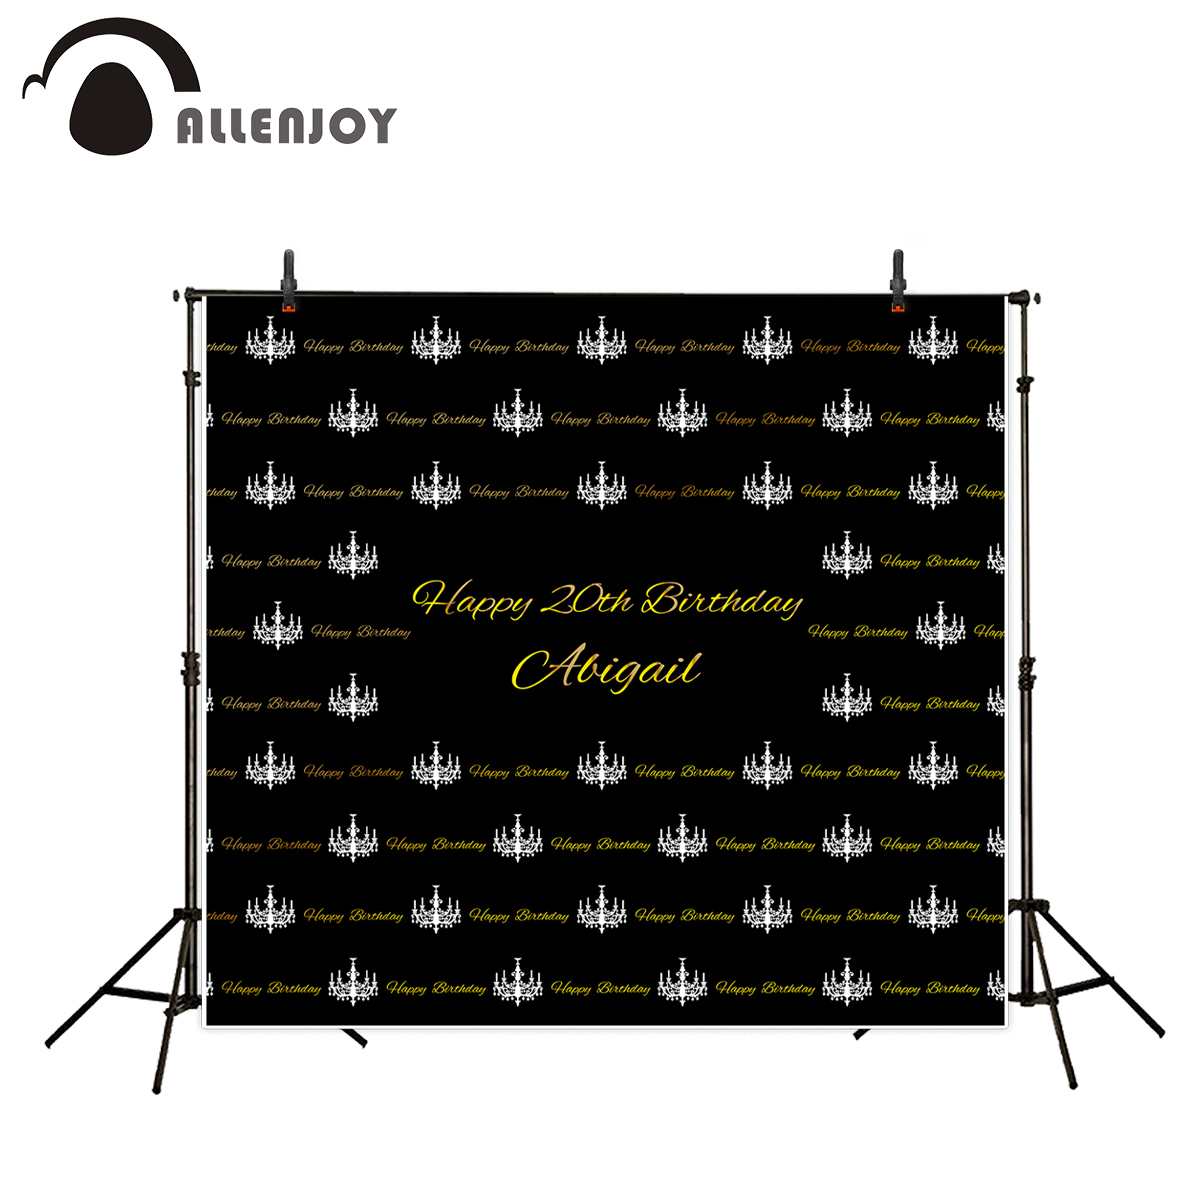 Allenjoy photography backdrop Chandelier step and repeat birthday party wedding backdrop backgrounds for photo studio background